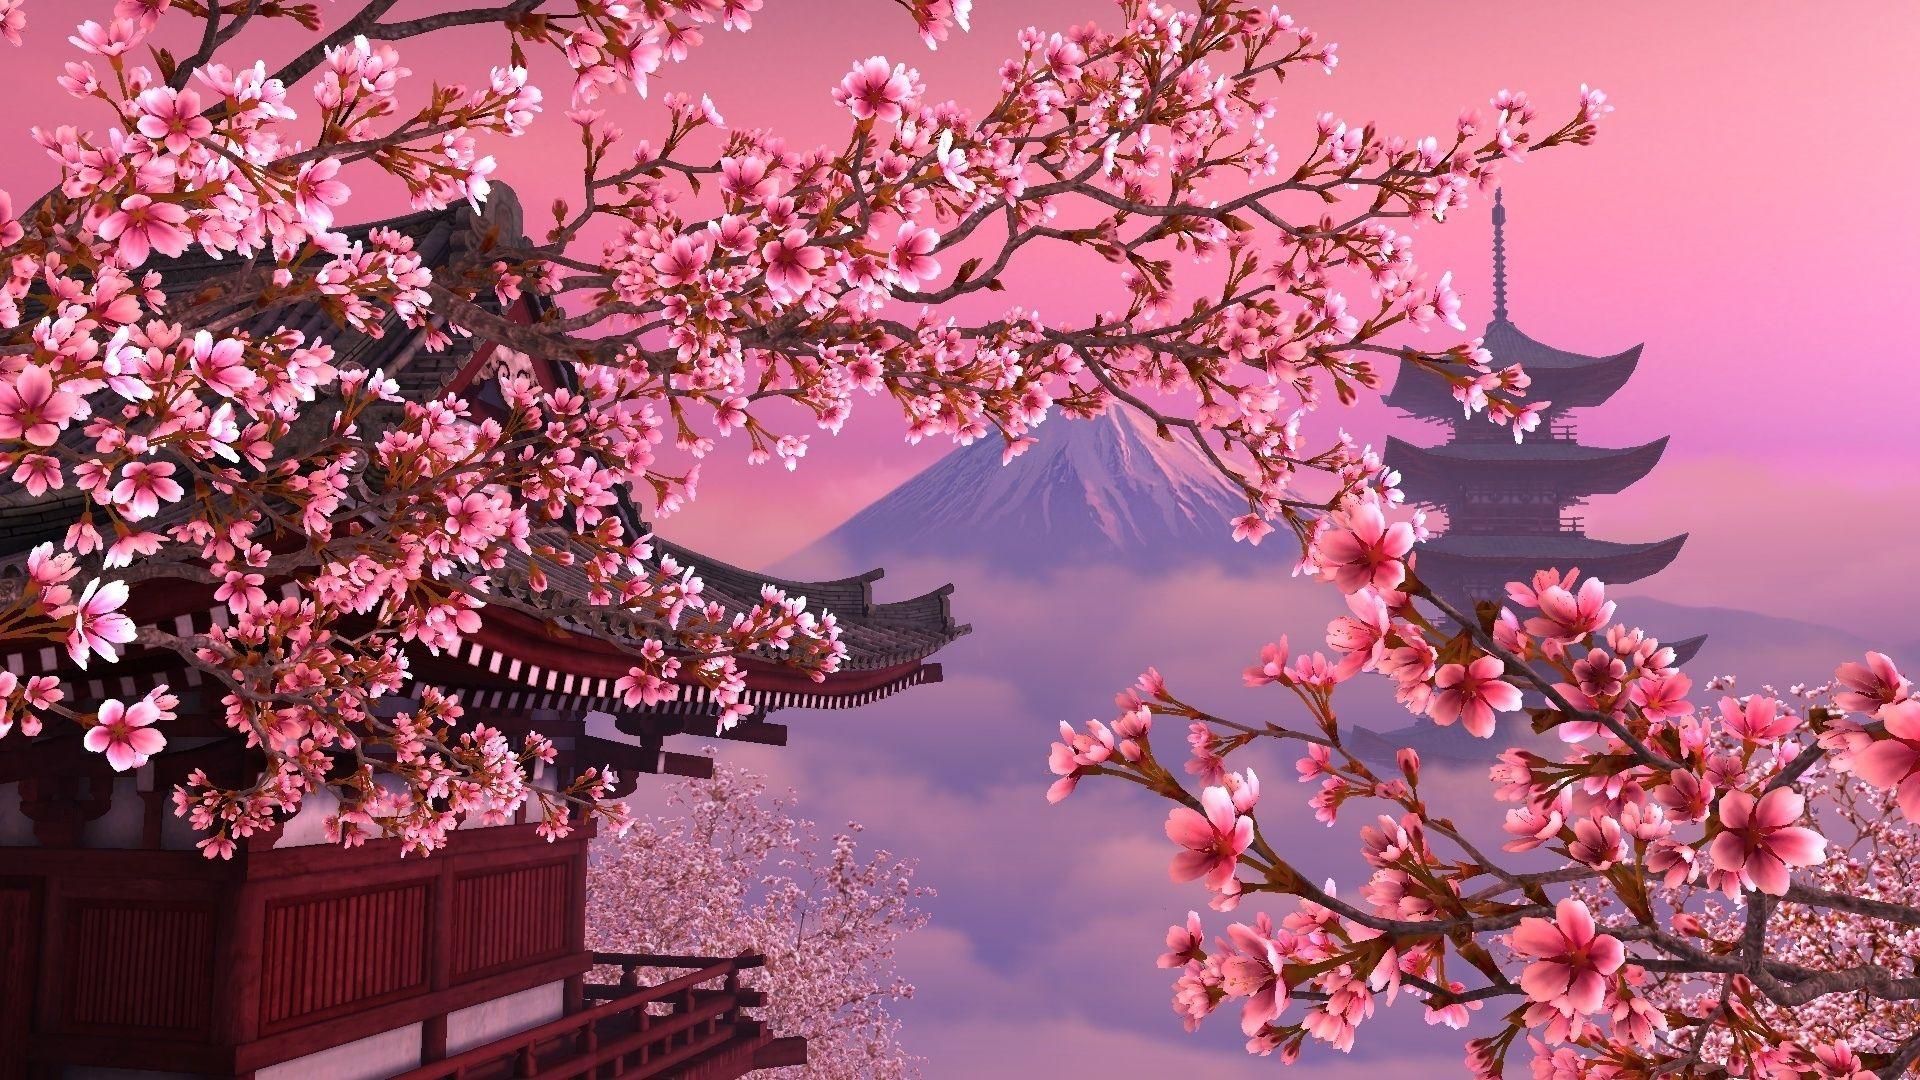 All About Japan De Songul Duger All Nature Of Wallpaper